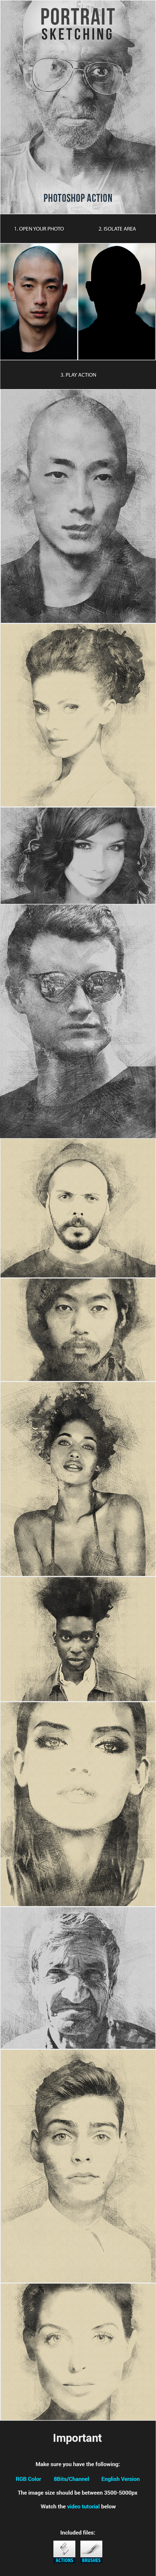 Portrait Sketching Design - Photo Effects Actions